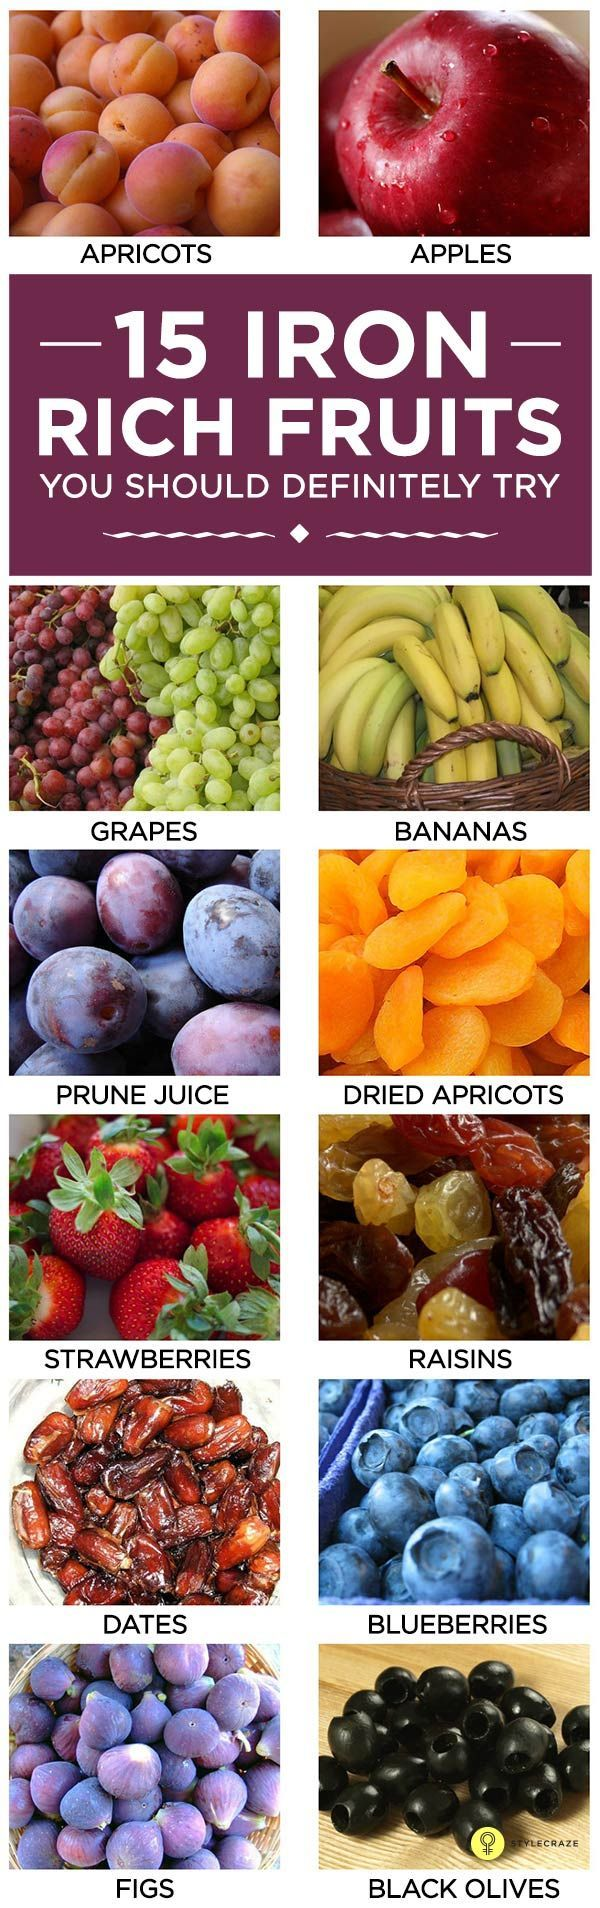 Top 15 Iron-Rich Foods  The Important Benefits Of Iron #fitness #fitnessideas #diet